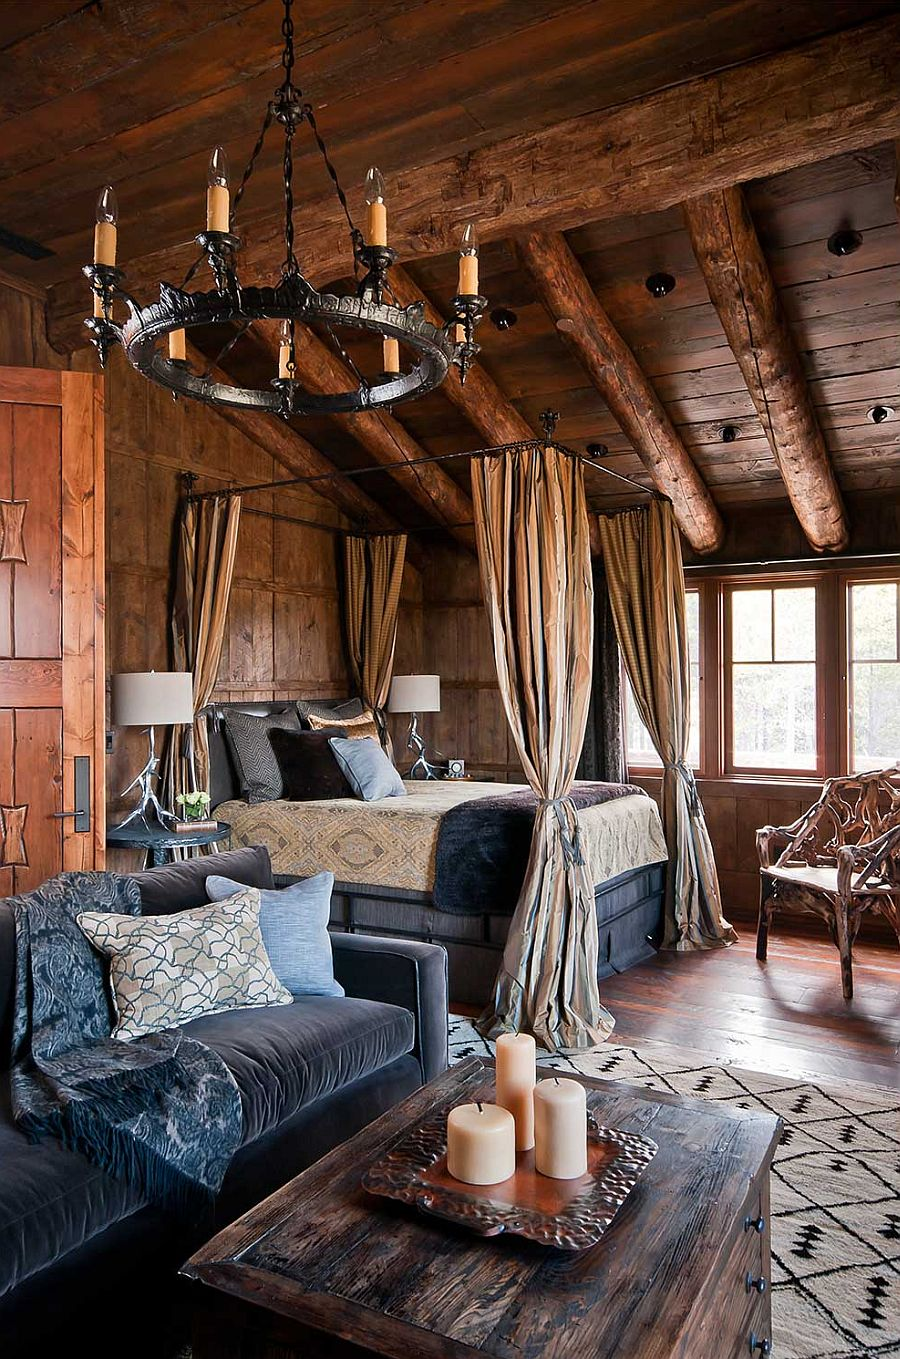 Dancing hearts picture perfect hillside escape in montana Traditional rustic master bedroom